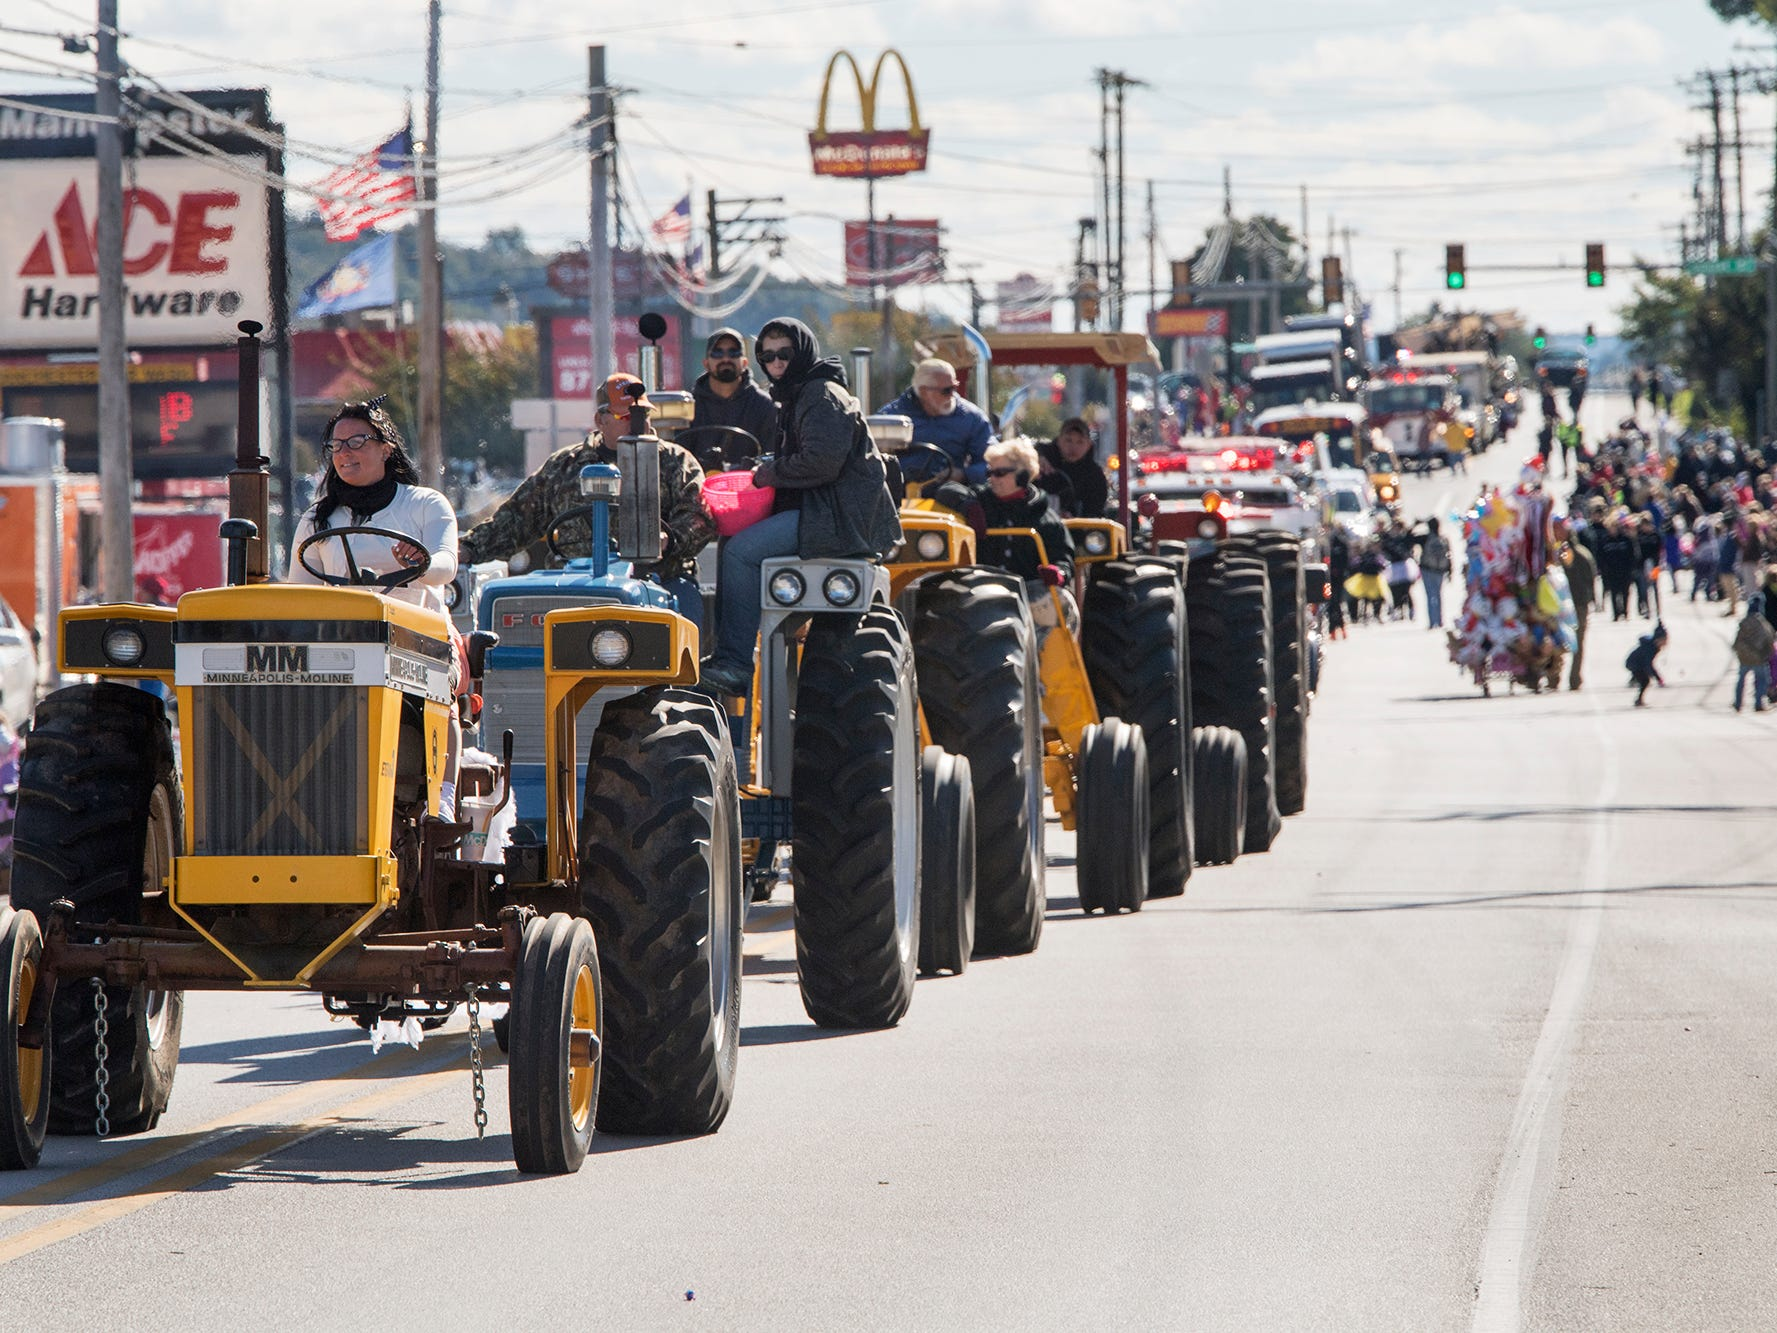 A line of tractors promotes Olde Tyme Days during the 53rd Annual Manchester/Mt. Wolf Halloween Parade.